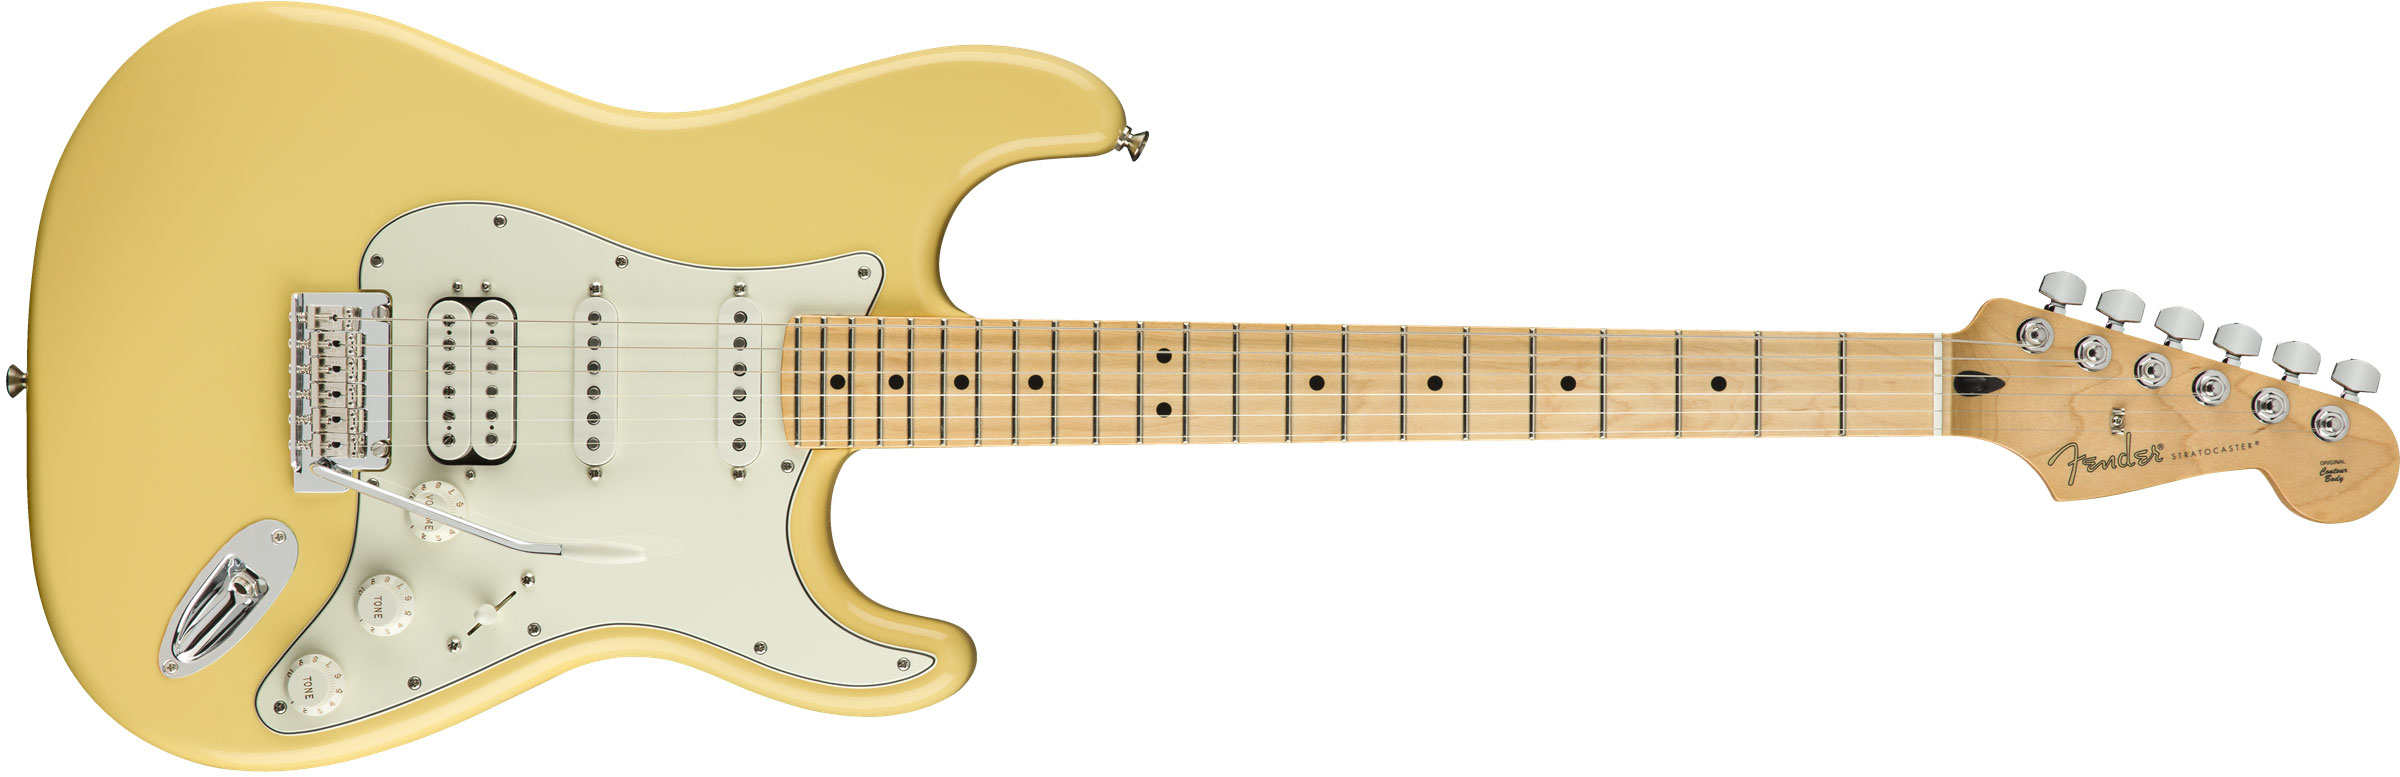 GUITARRA FENDER PLAYER STRATOCASTER HSS MN 014-4522-534 BUTTERCREAM